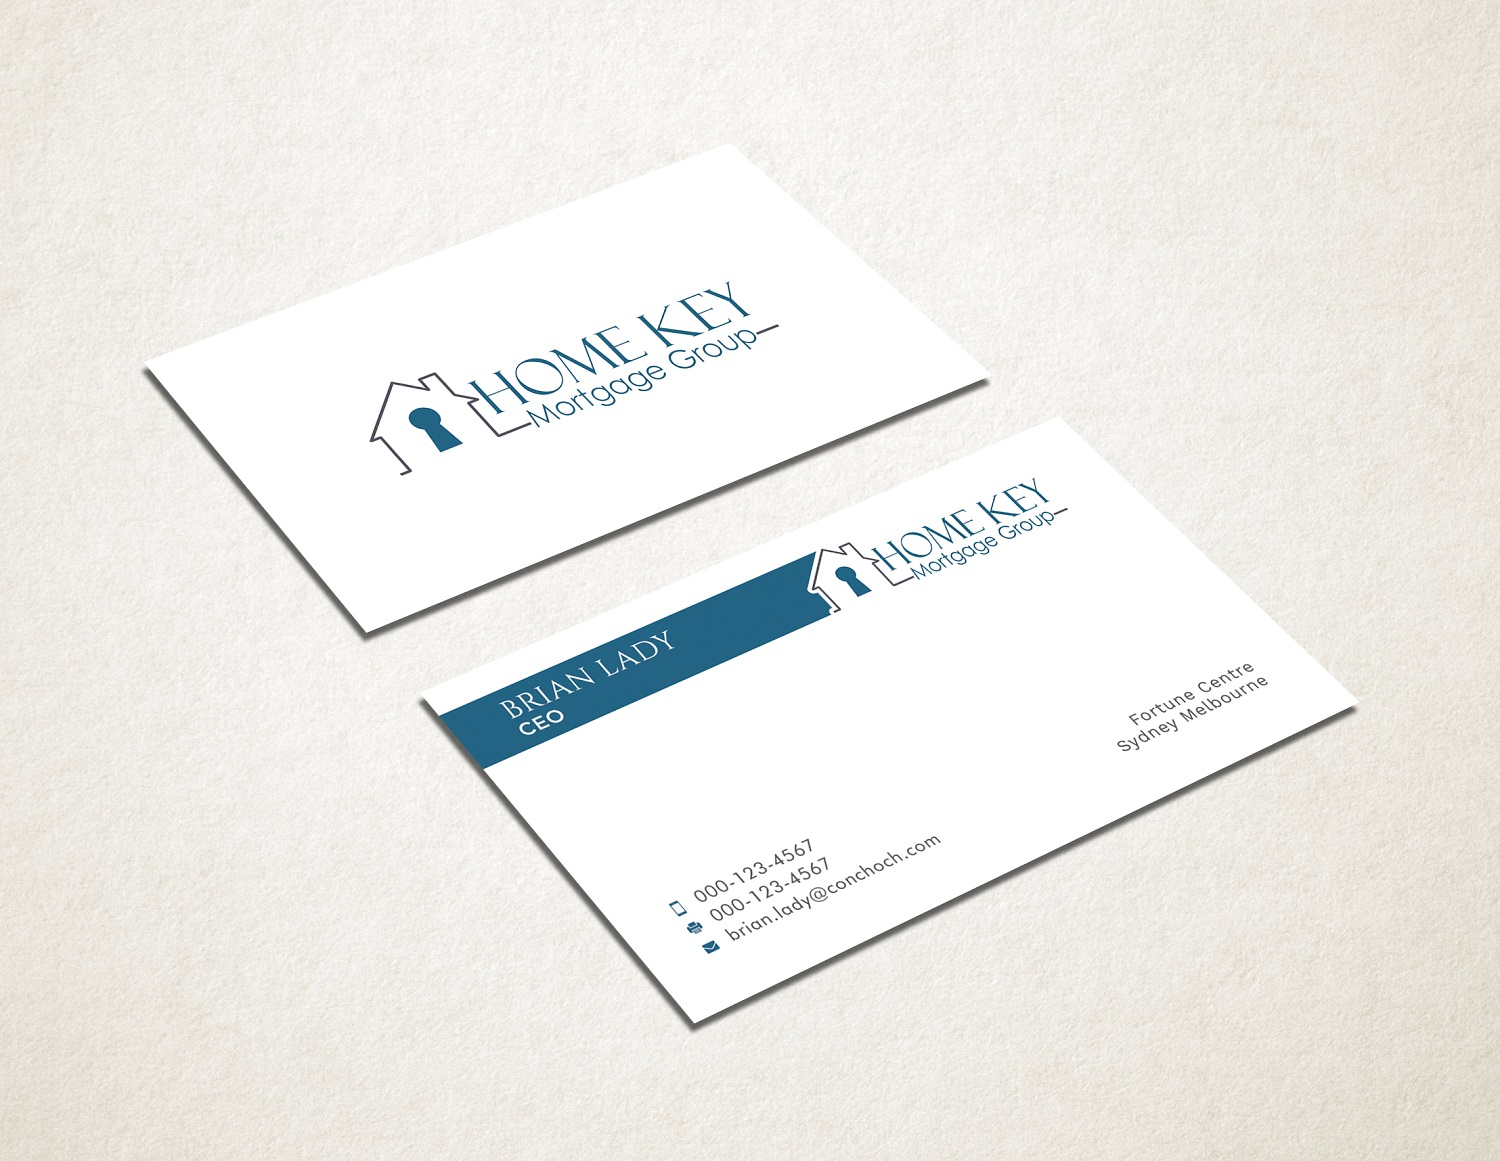 It company business card design for home key mortgage group by business card design by graphic flame for home key mortgage group design 15242914 colourmoves